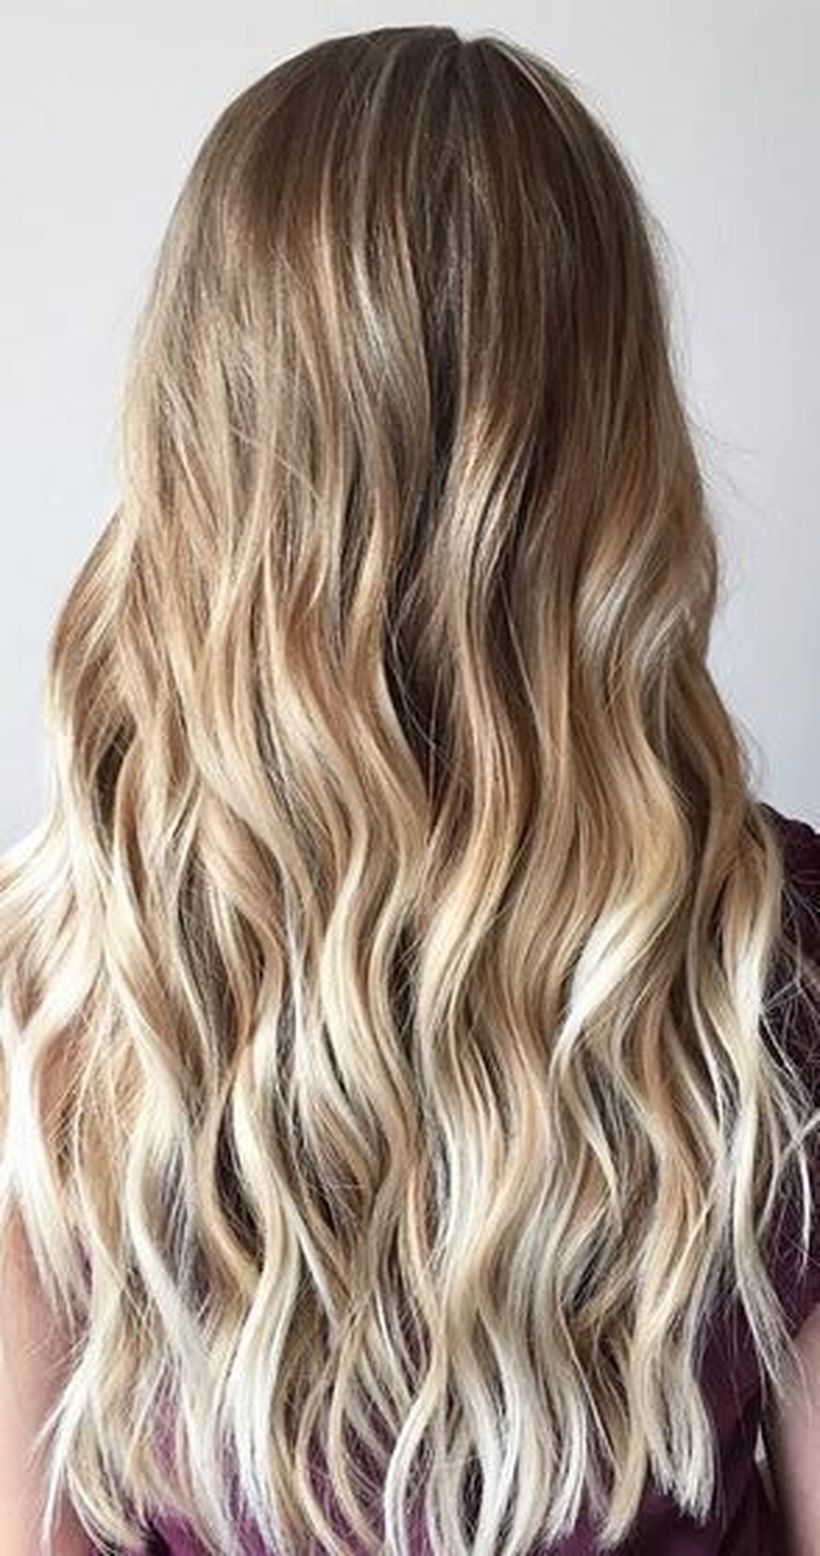 Best hair color ideas in 2017 62